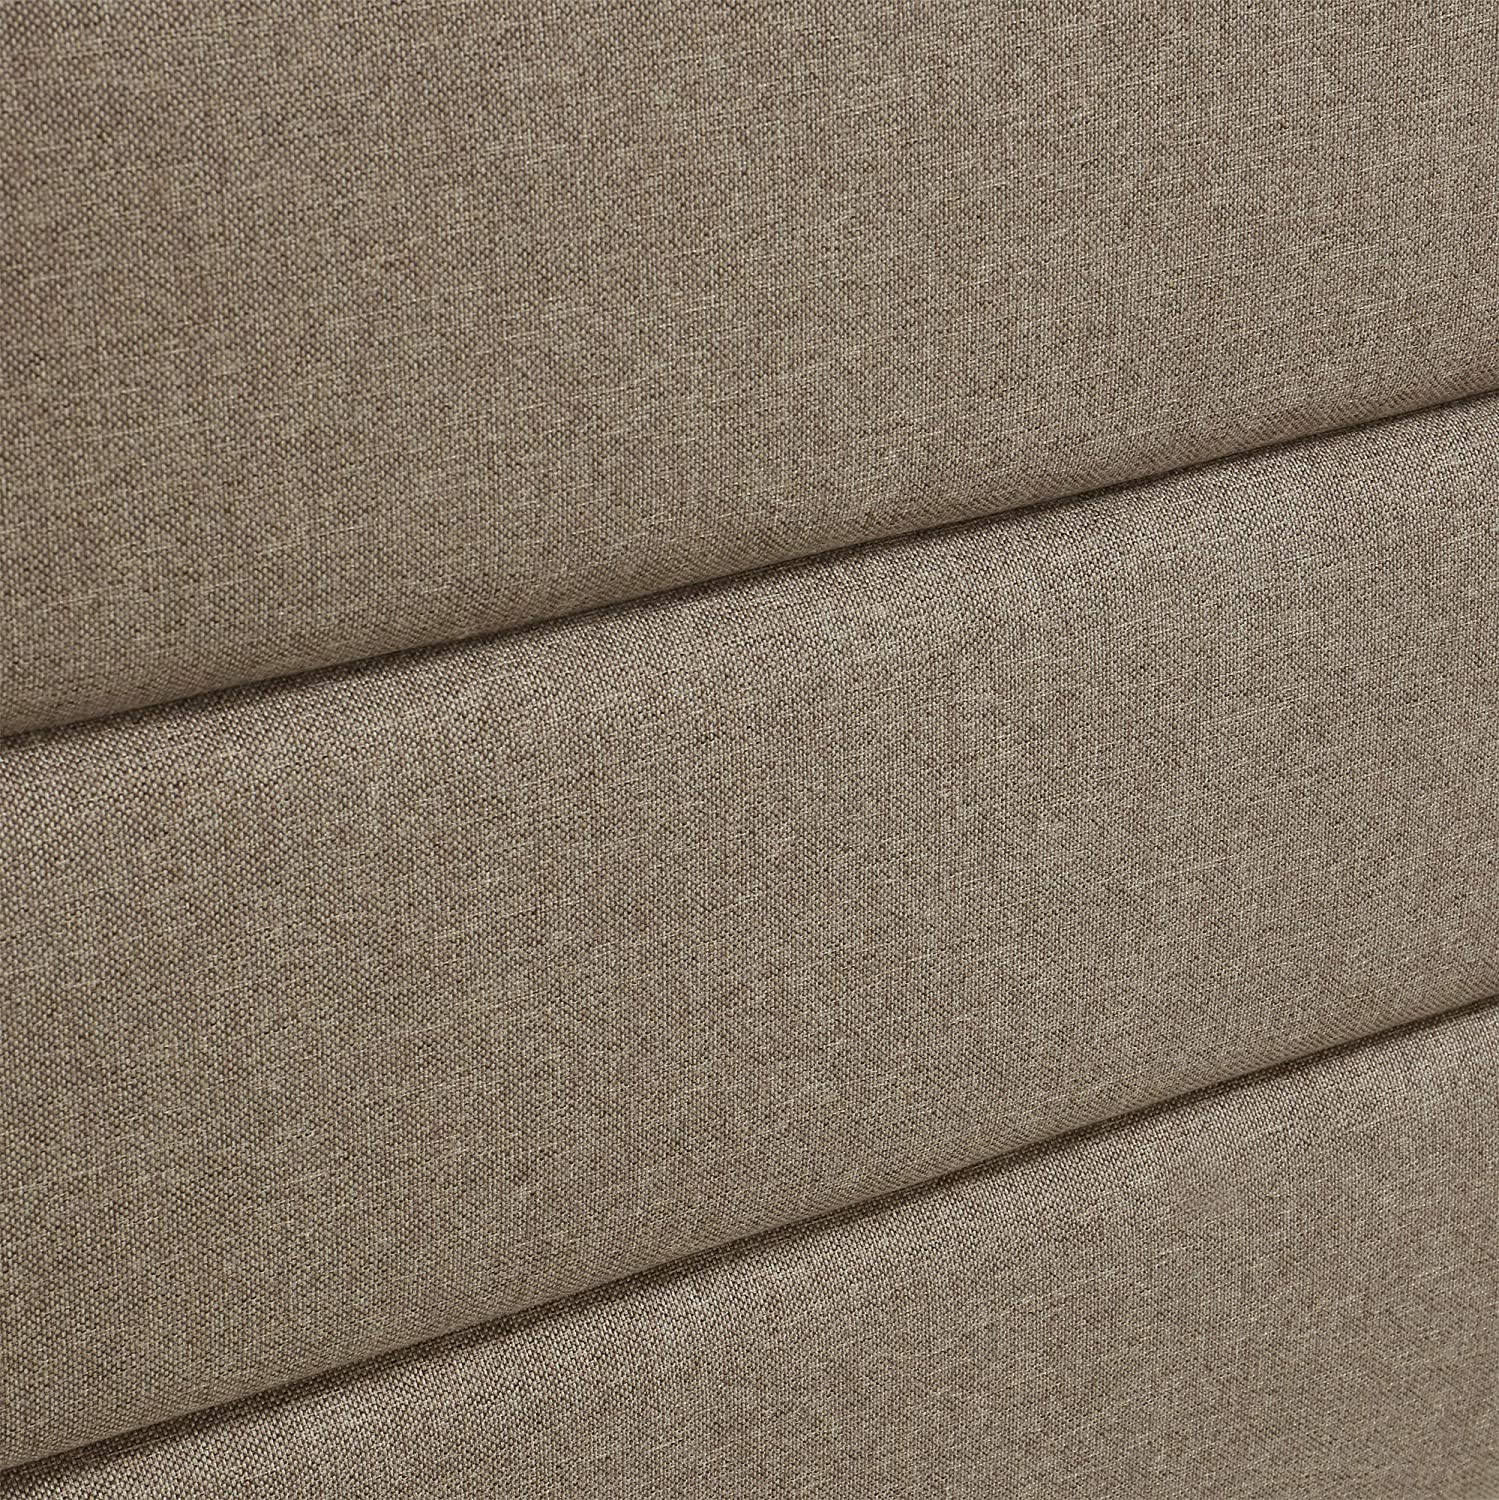 Soft Linen-Textured Fabric Queen Brown Serta Palisades Collection Upholstered Padded Headboard Modern Tufted Design